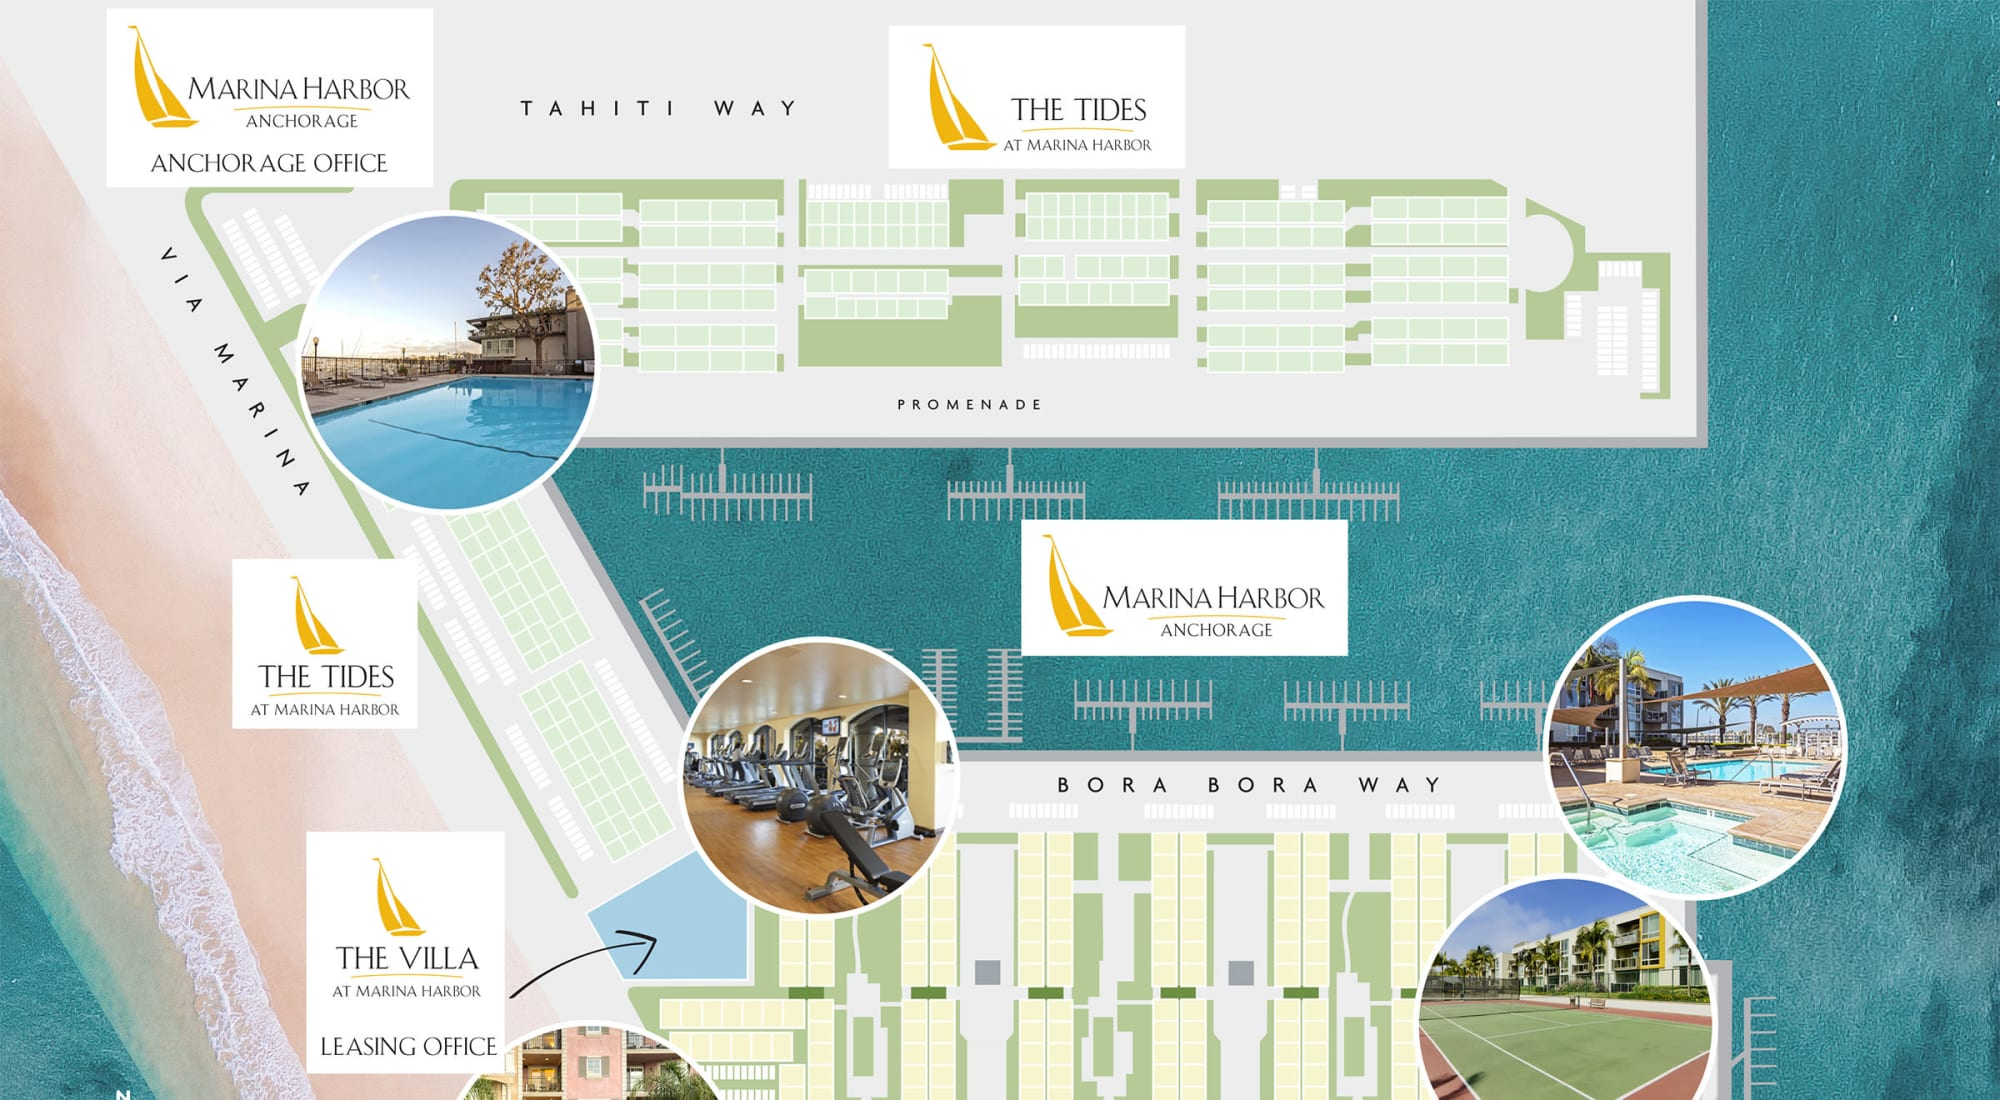 Overall neighborhood site plan for The Tides at Marina Harbor in Marina Del Rey, California